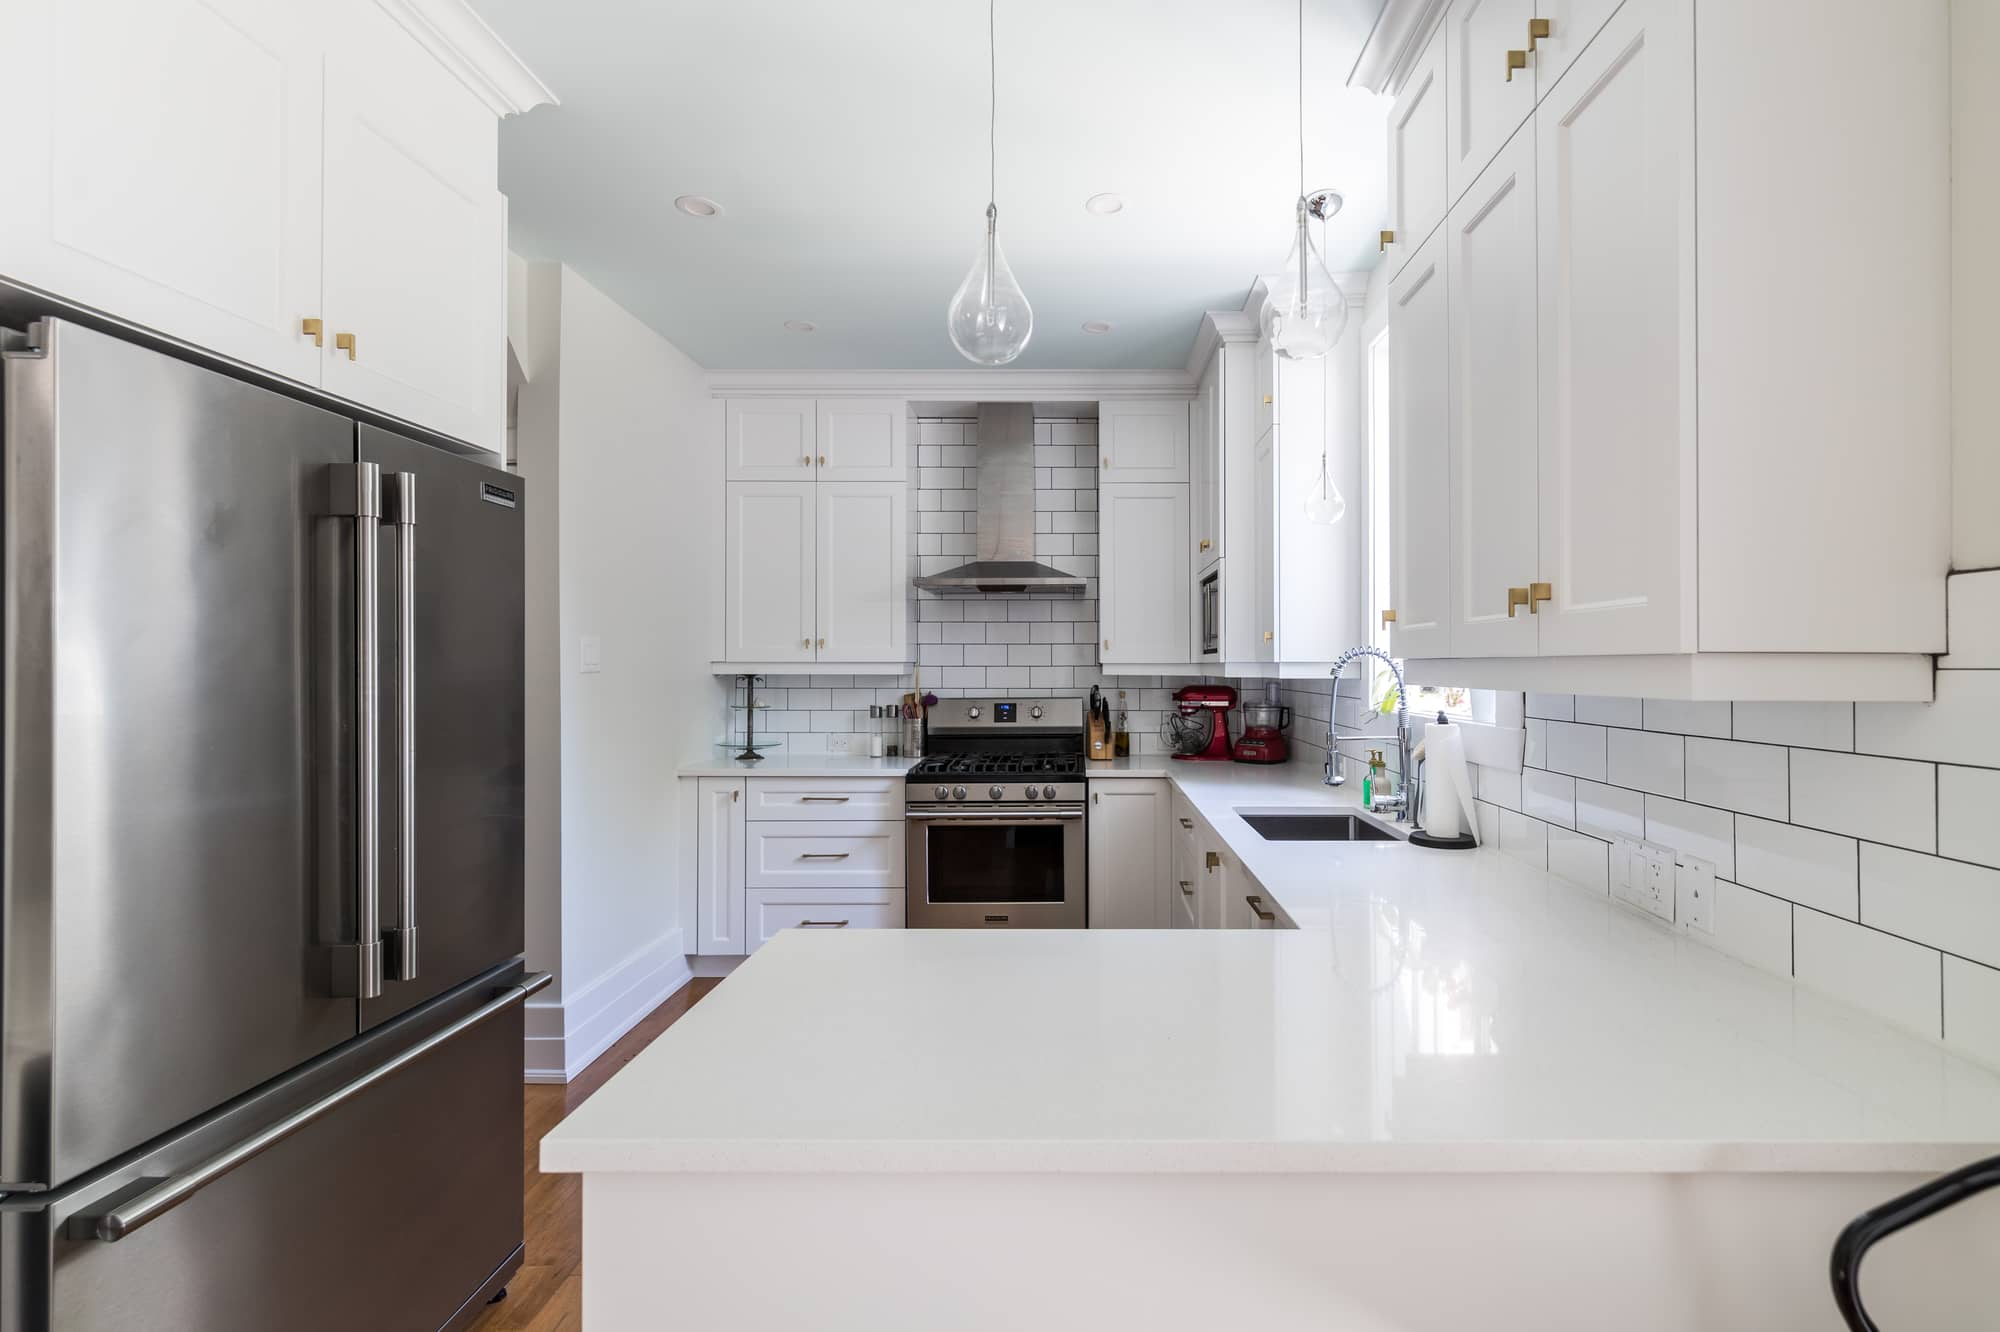 Kitchen renovation with white cabinets and stainless steel refrigerator